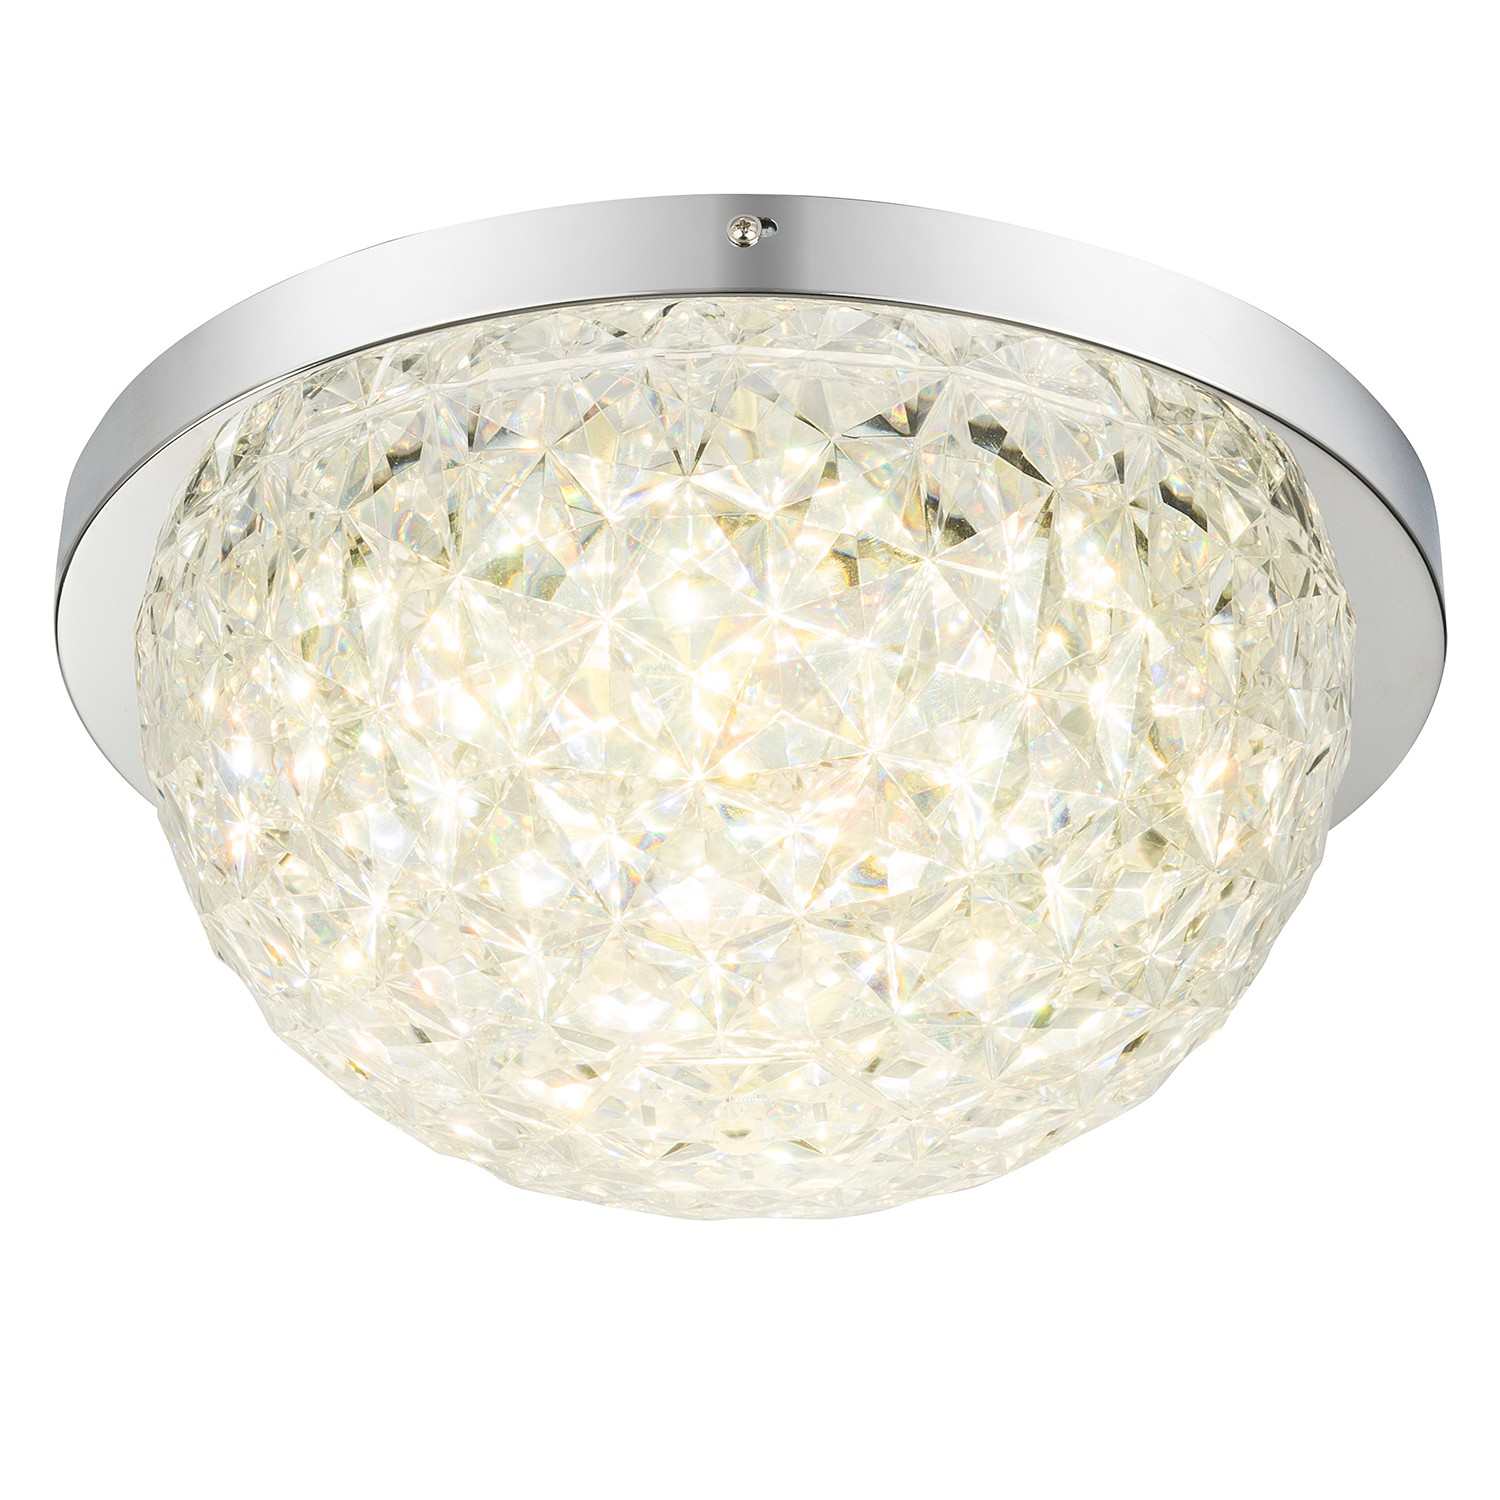 LED-Deckenleuchte Vayon I, Globo Lighting